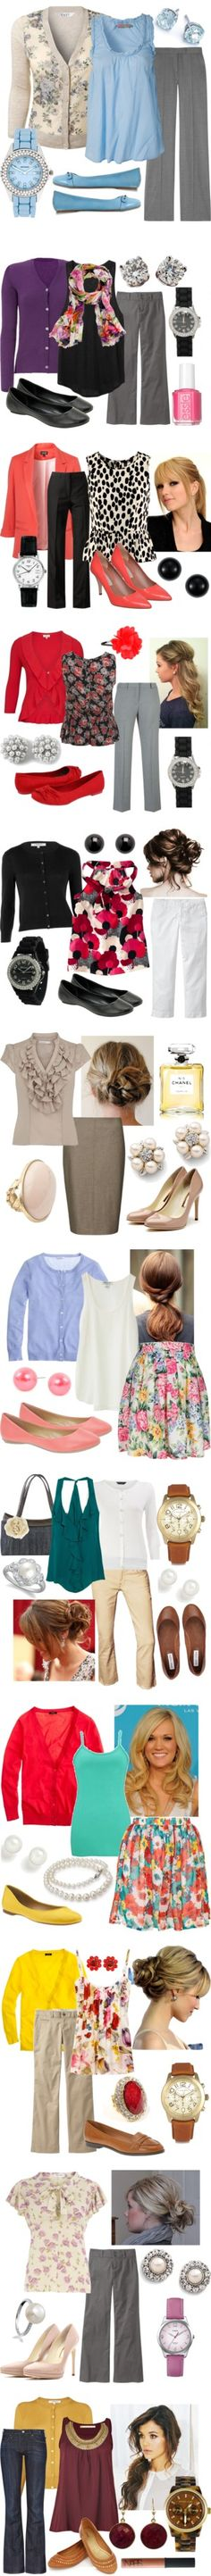 Cute! Love the quick, easy, hairstyles to go with the outfits too!! #cynthiawhiteandassociates #accessories #fashion #personalbrand #spring #workattire